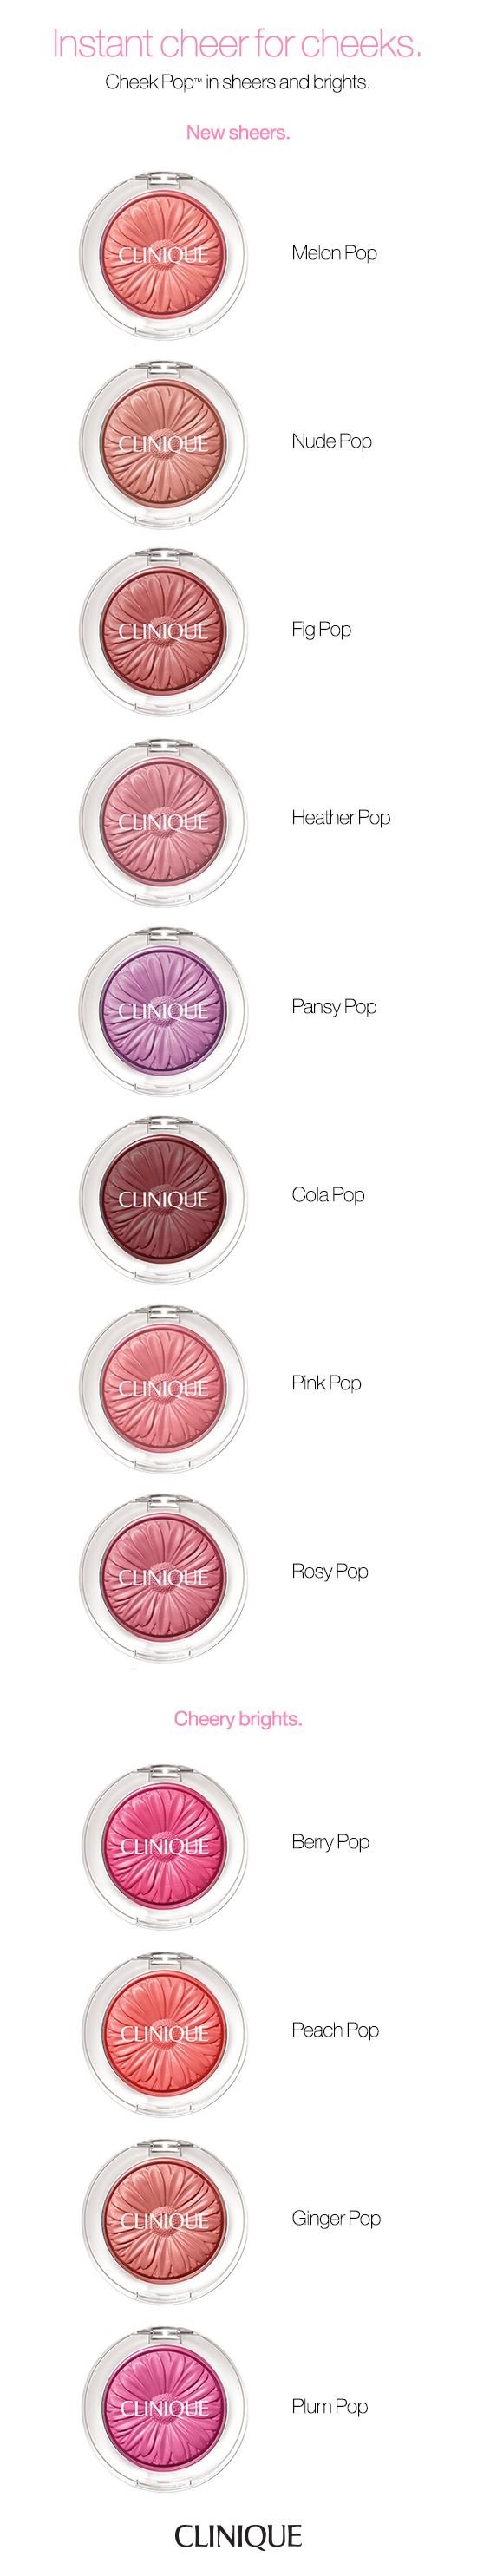 Vibrant yet natural-looking cheek colour that looks virtually powderless. In a silky smooth, stay-true formula with shades for every skin tone. That just-pinched look, simply effortless. #Beauty #Makeup #Blush #CheekPop #Clinique